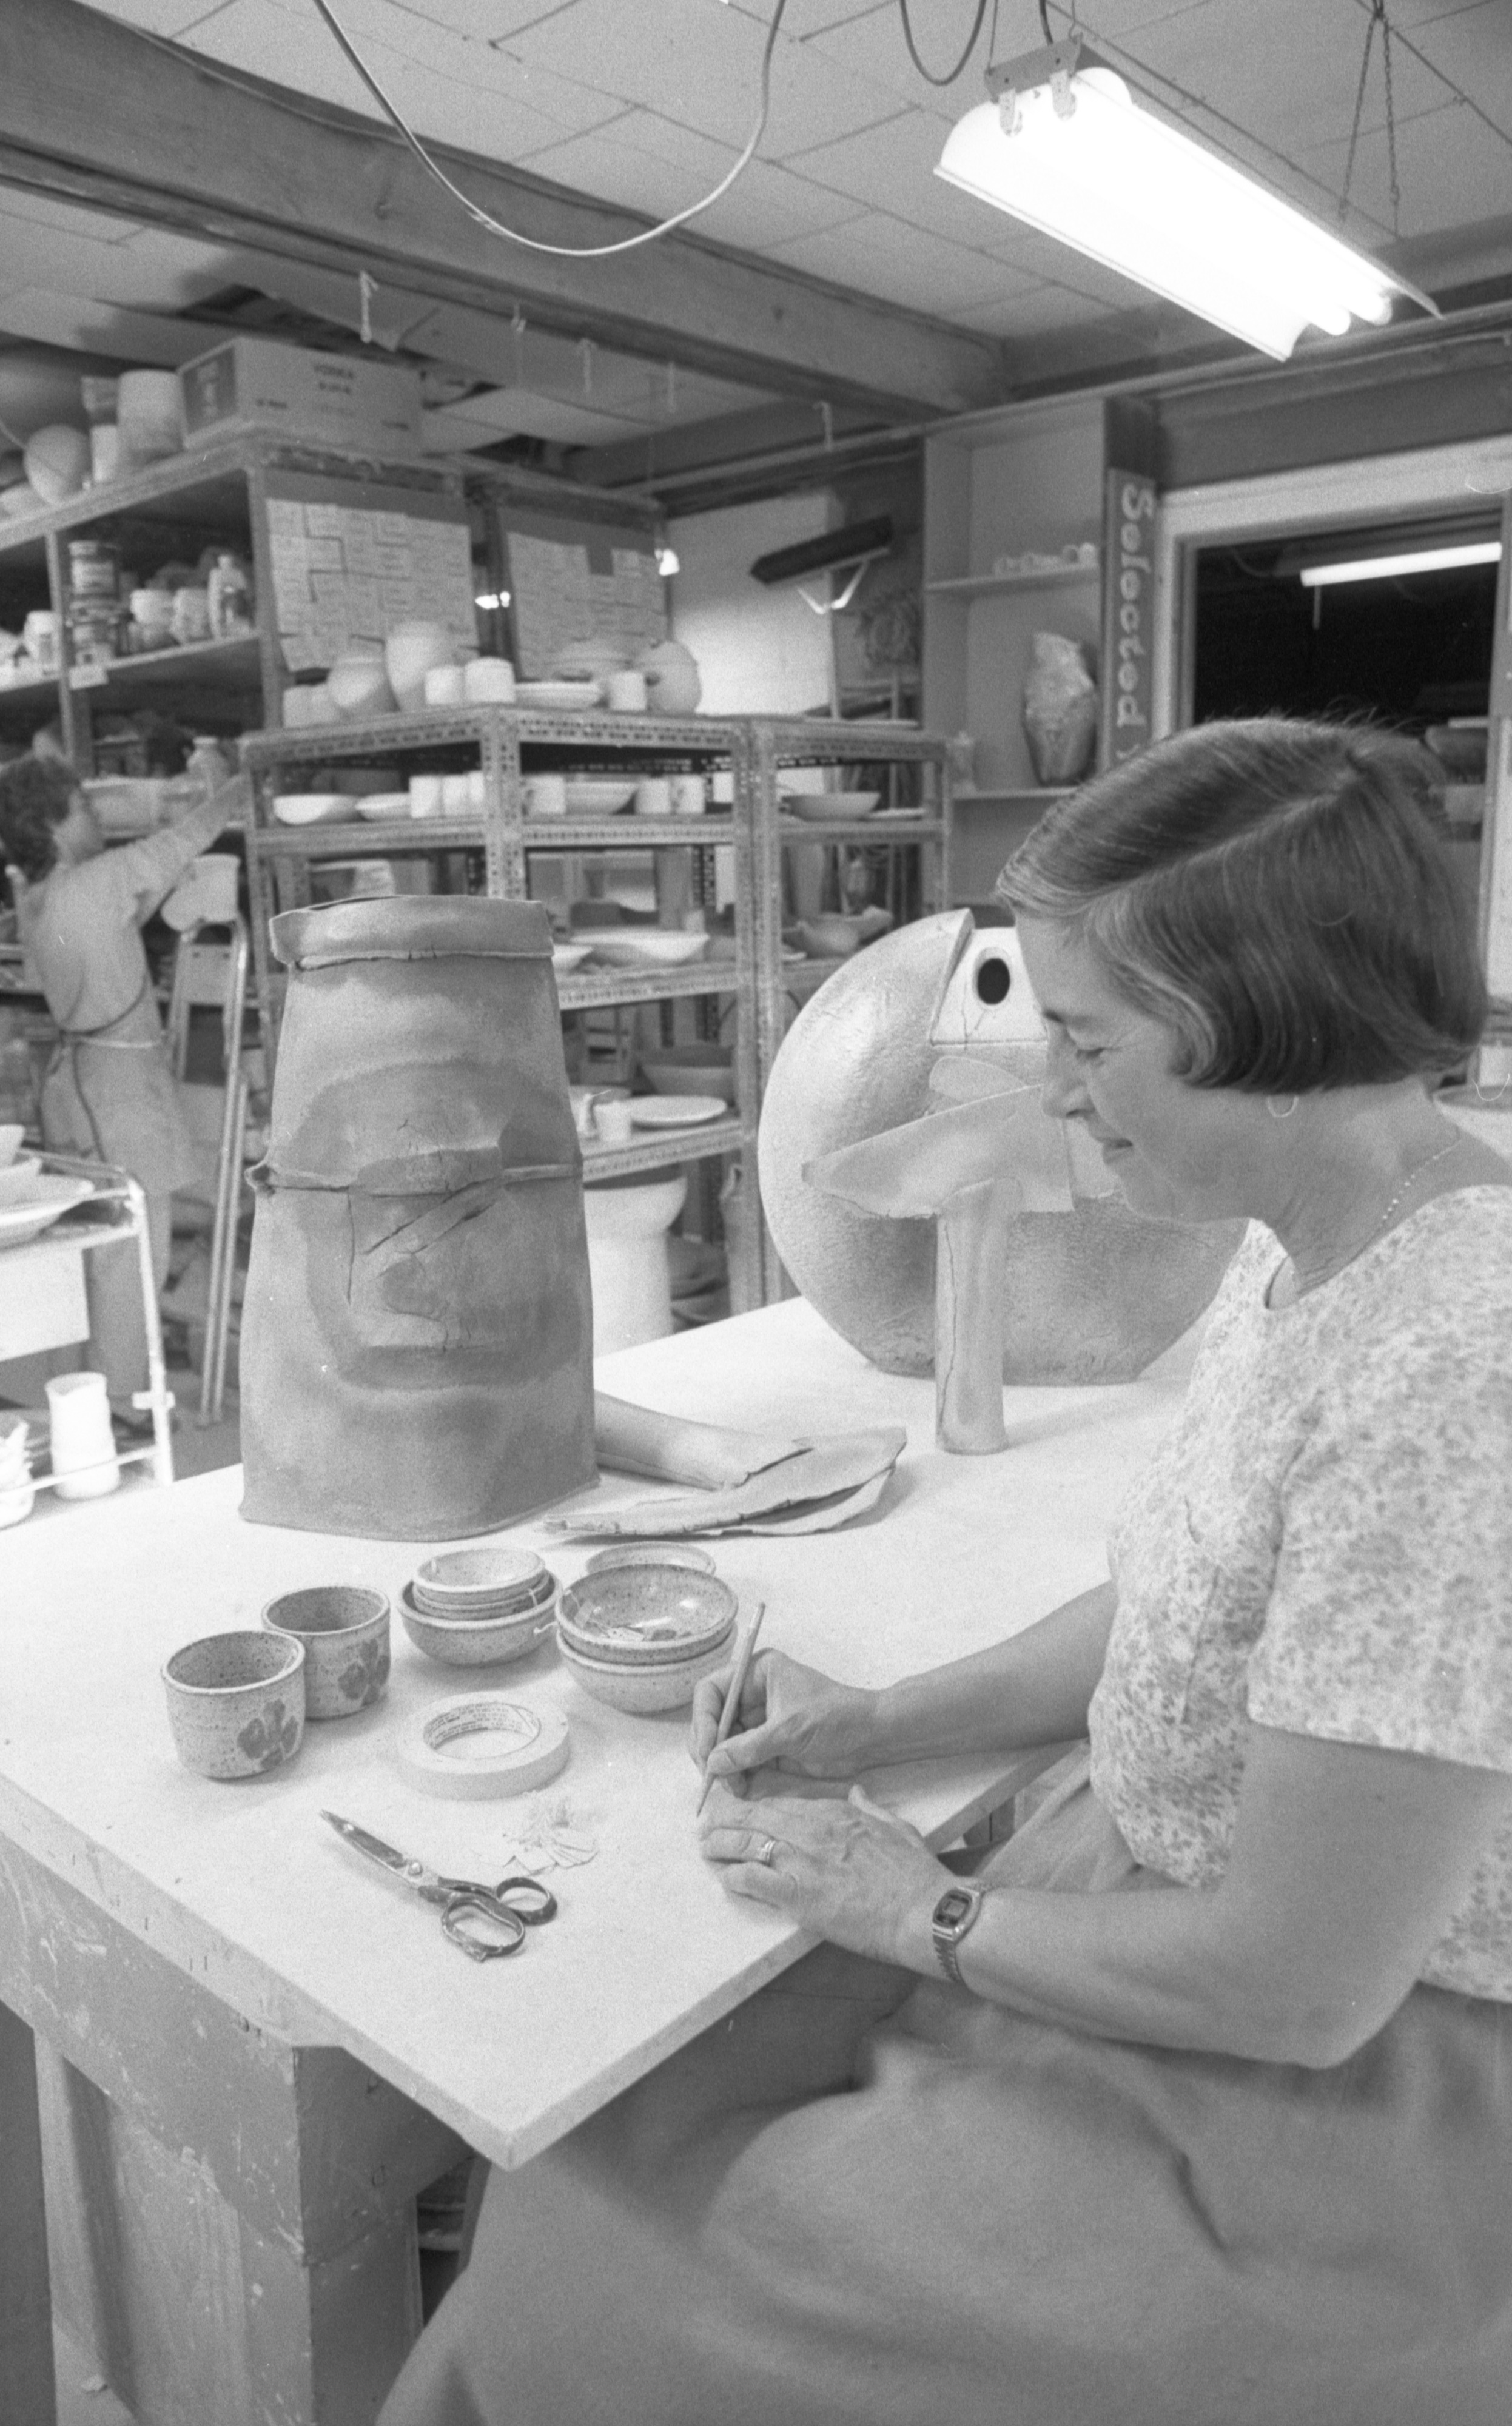 Ellie Shappirio Prepares Ceramics For The Potters Guild Annual June Sale, May 1985 image